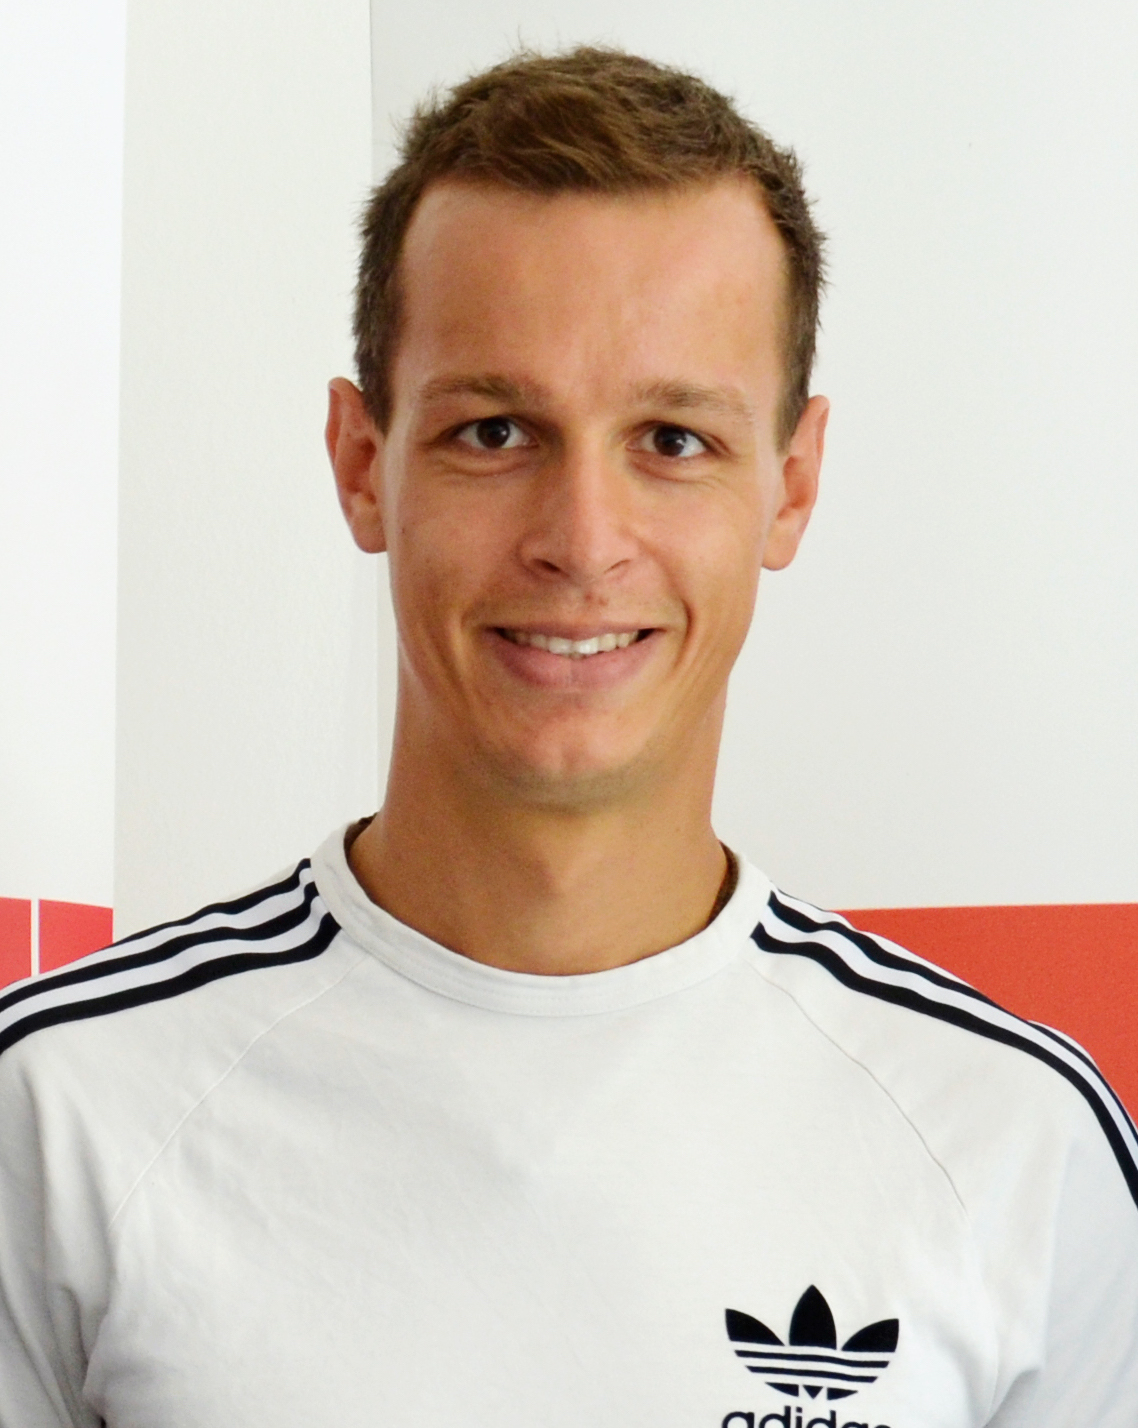 Athletiktrainer Christian Weich (Foto: Privat)